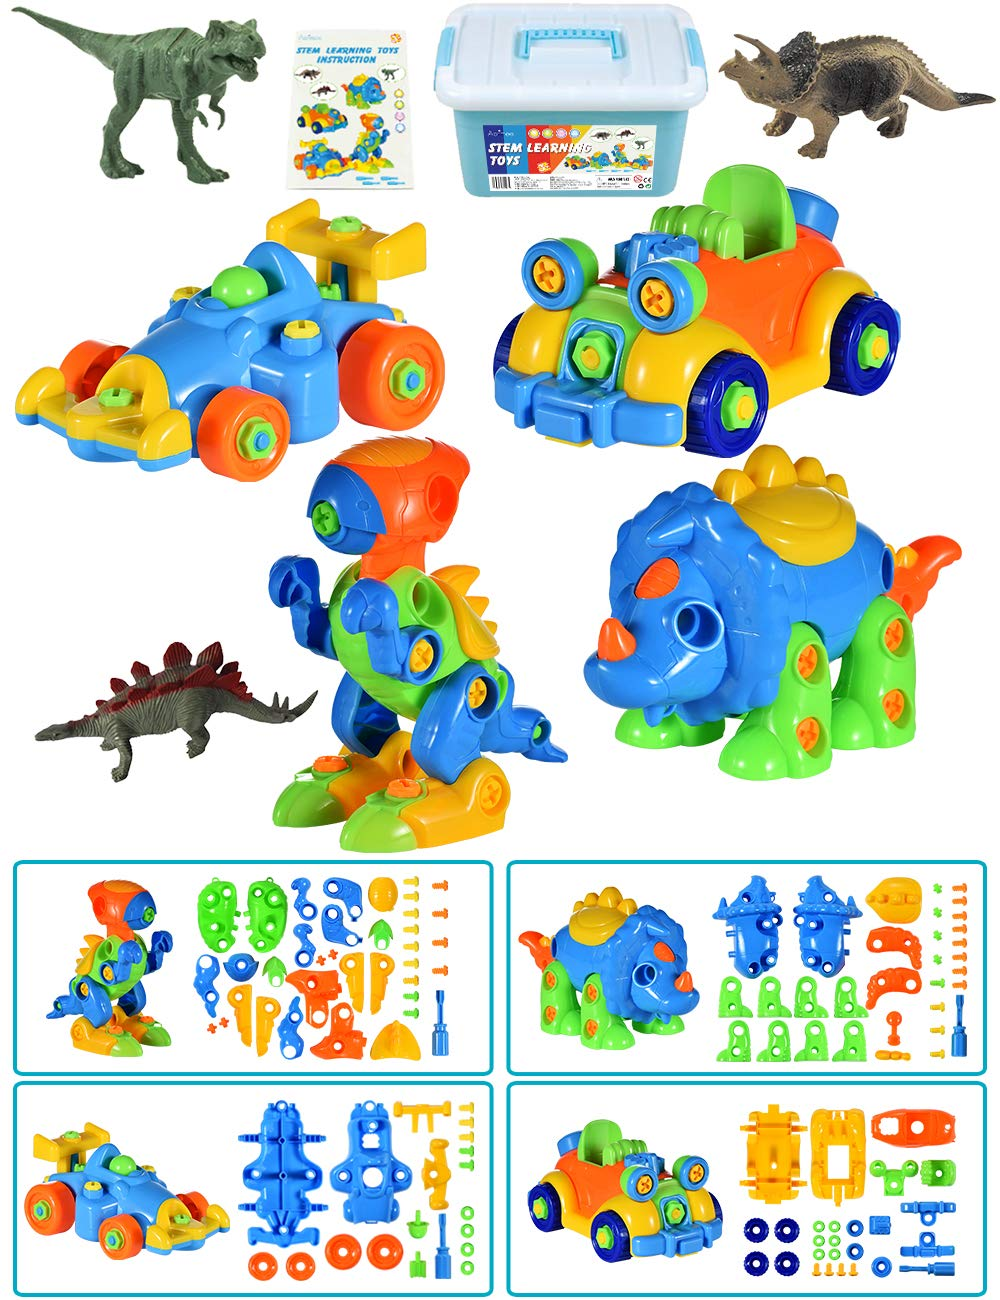 STEM Toys for Toddlers, Take Apart Toys of 2 Dinosaurs and 2 Cars, 3 Dinosaur Model Toys, Preschool Learning Toys for 3-6 Year Old Boys Girls Kids, Educational Gifts for Christmas Birthday, 111 Pieces by Aofmee